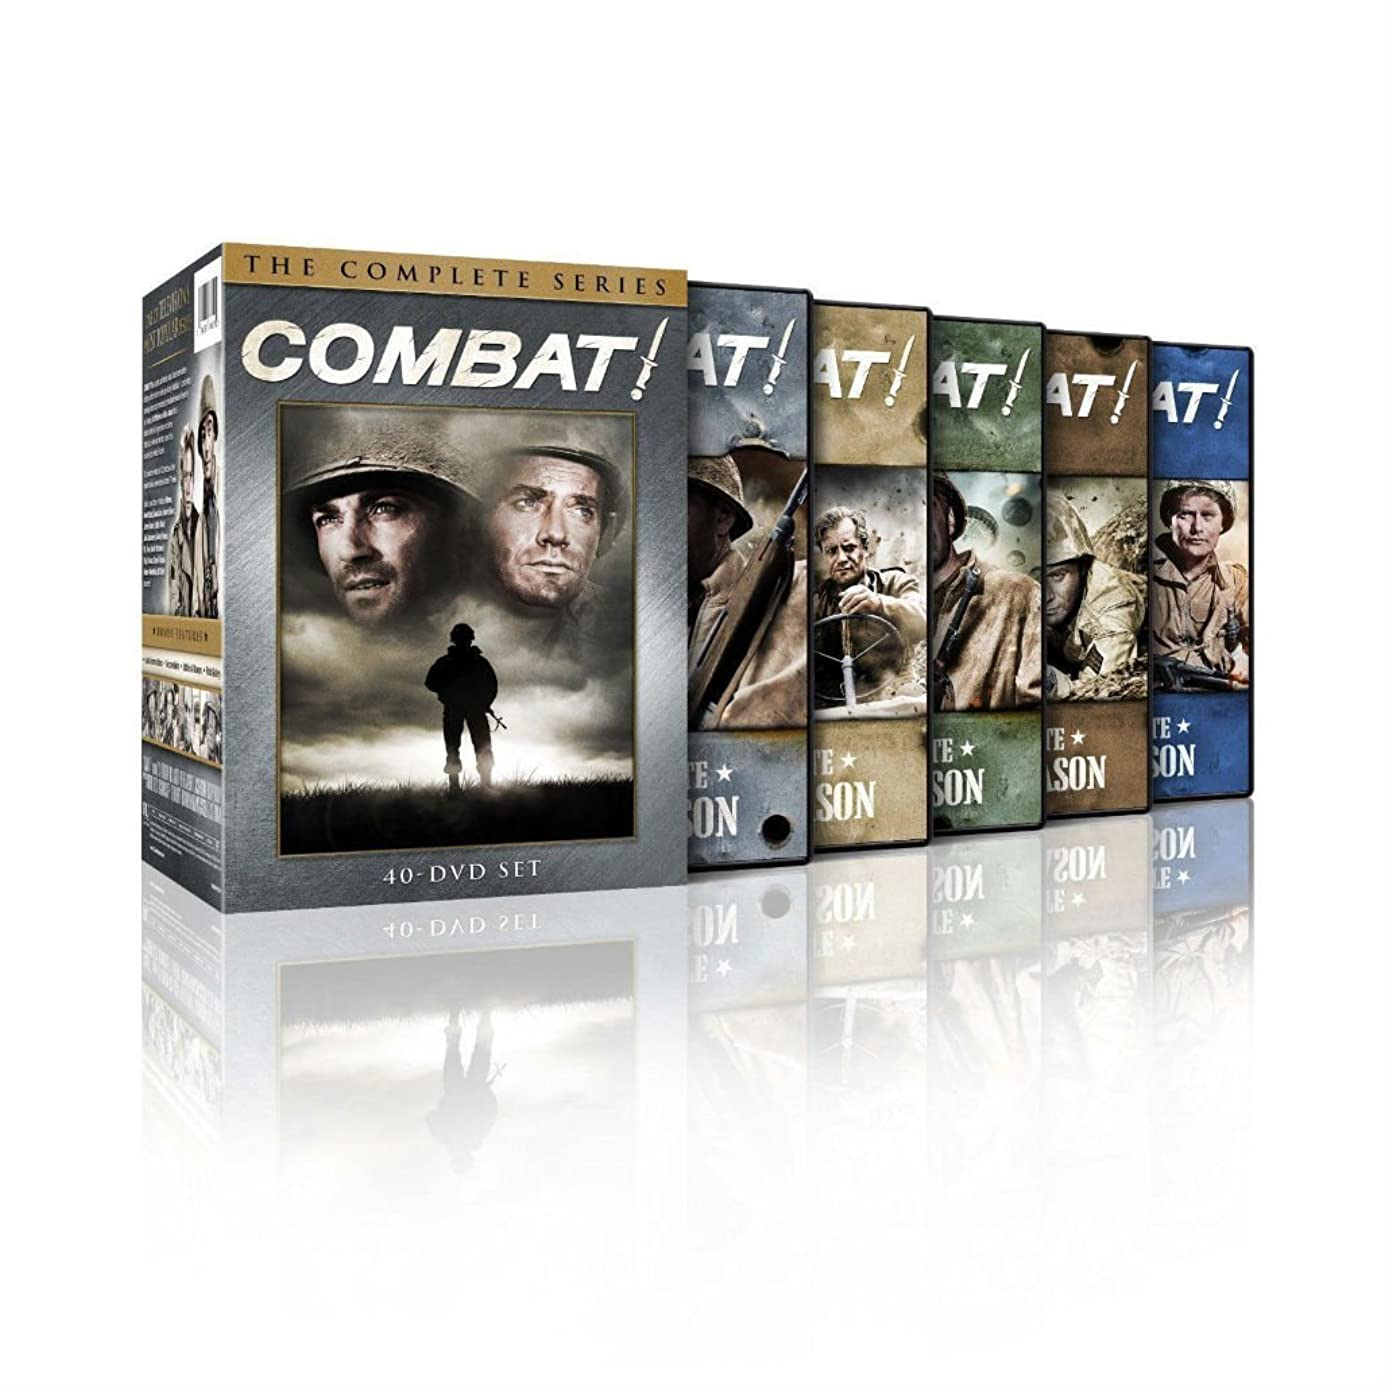 Combat! The Complete Series DVDS Seasons 1,2,3,4,5 Disc Box Set New & Sealed fgd3327621060